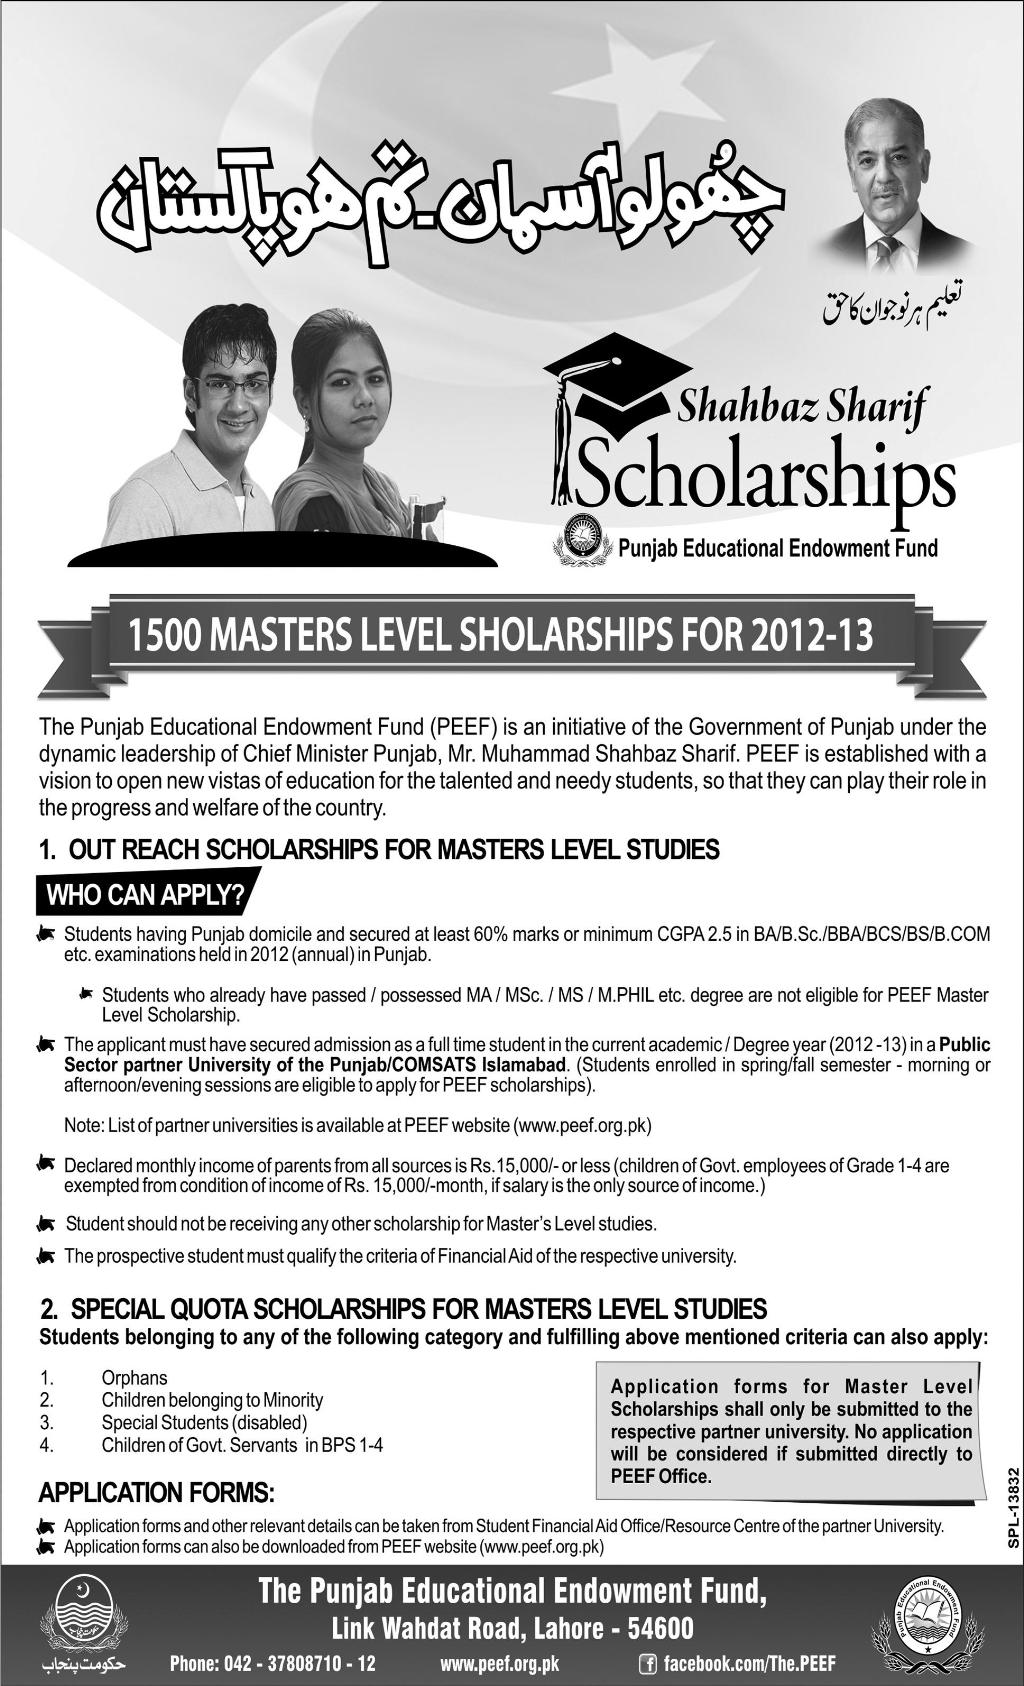 Shahbaz Sharif Scholarship Scheme for Punjab Students Shahbaz Sharif Scholarship Scheme for Punjab Students